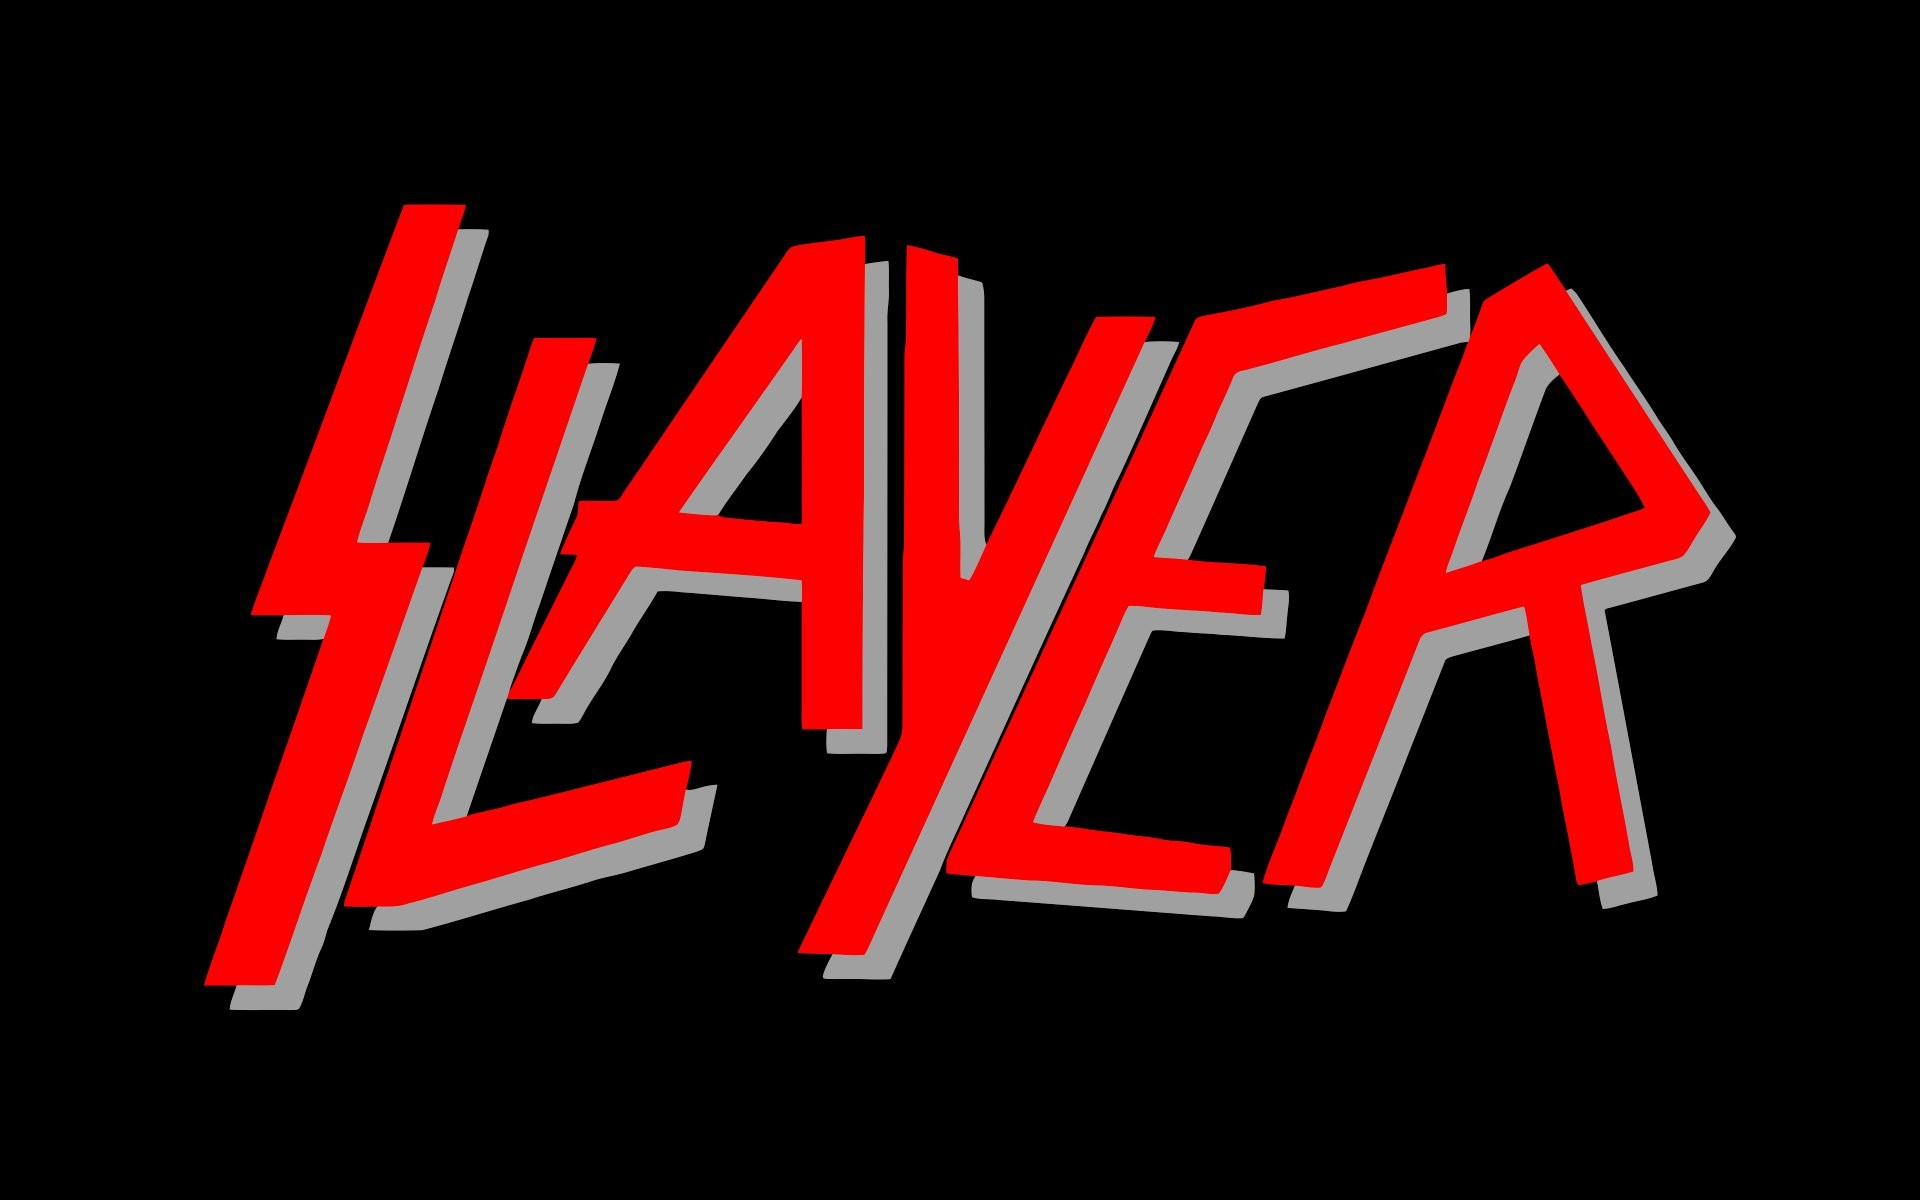 1920x1200 Slayer Wallpaper HD